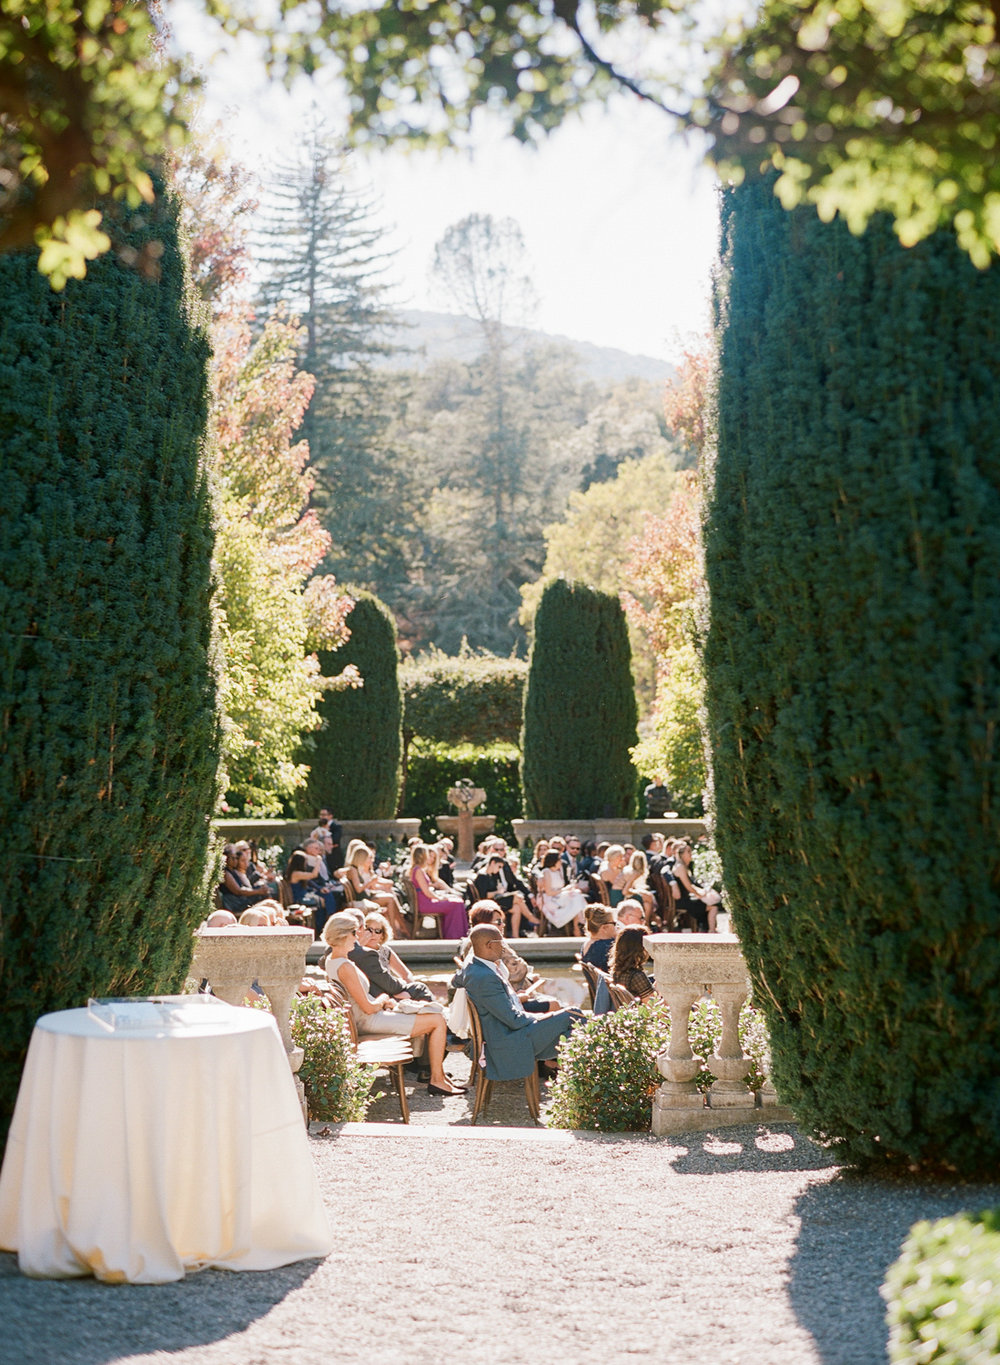 Guests seated by the fountain in Beaulieu Gardens, St. Helena; Sylvie Gil Photography